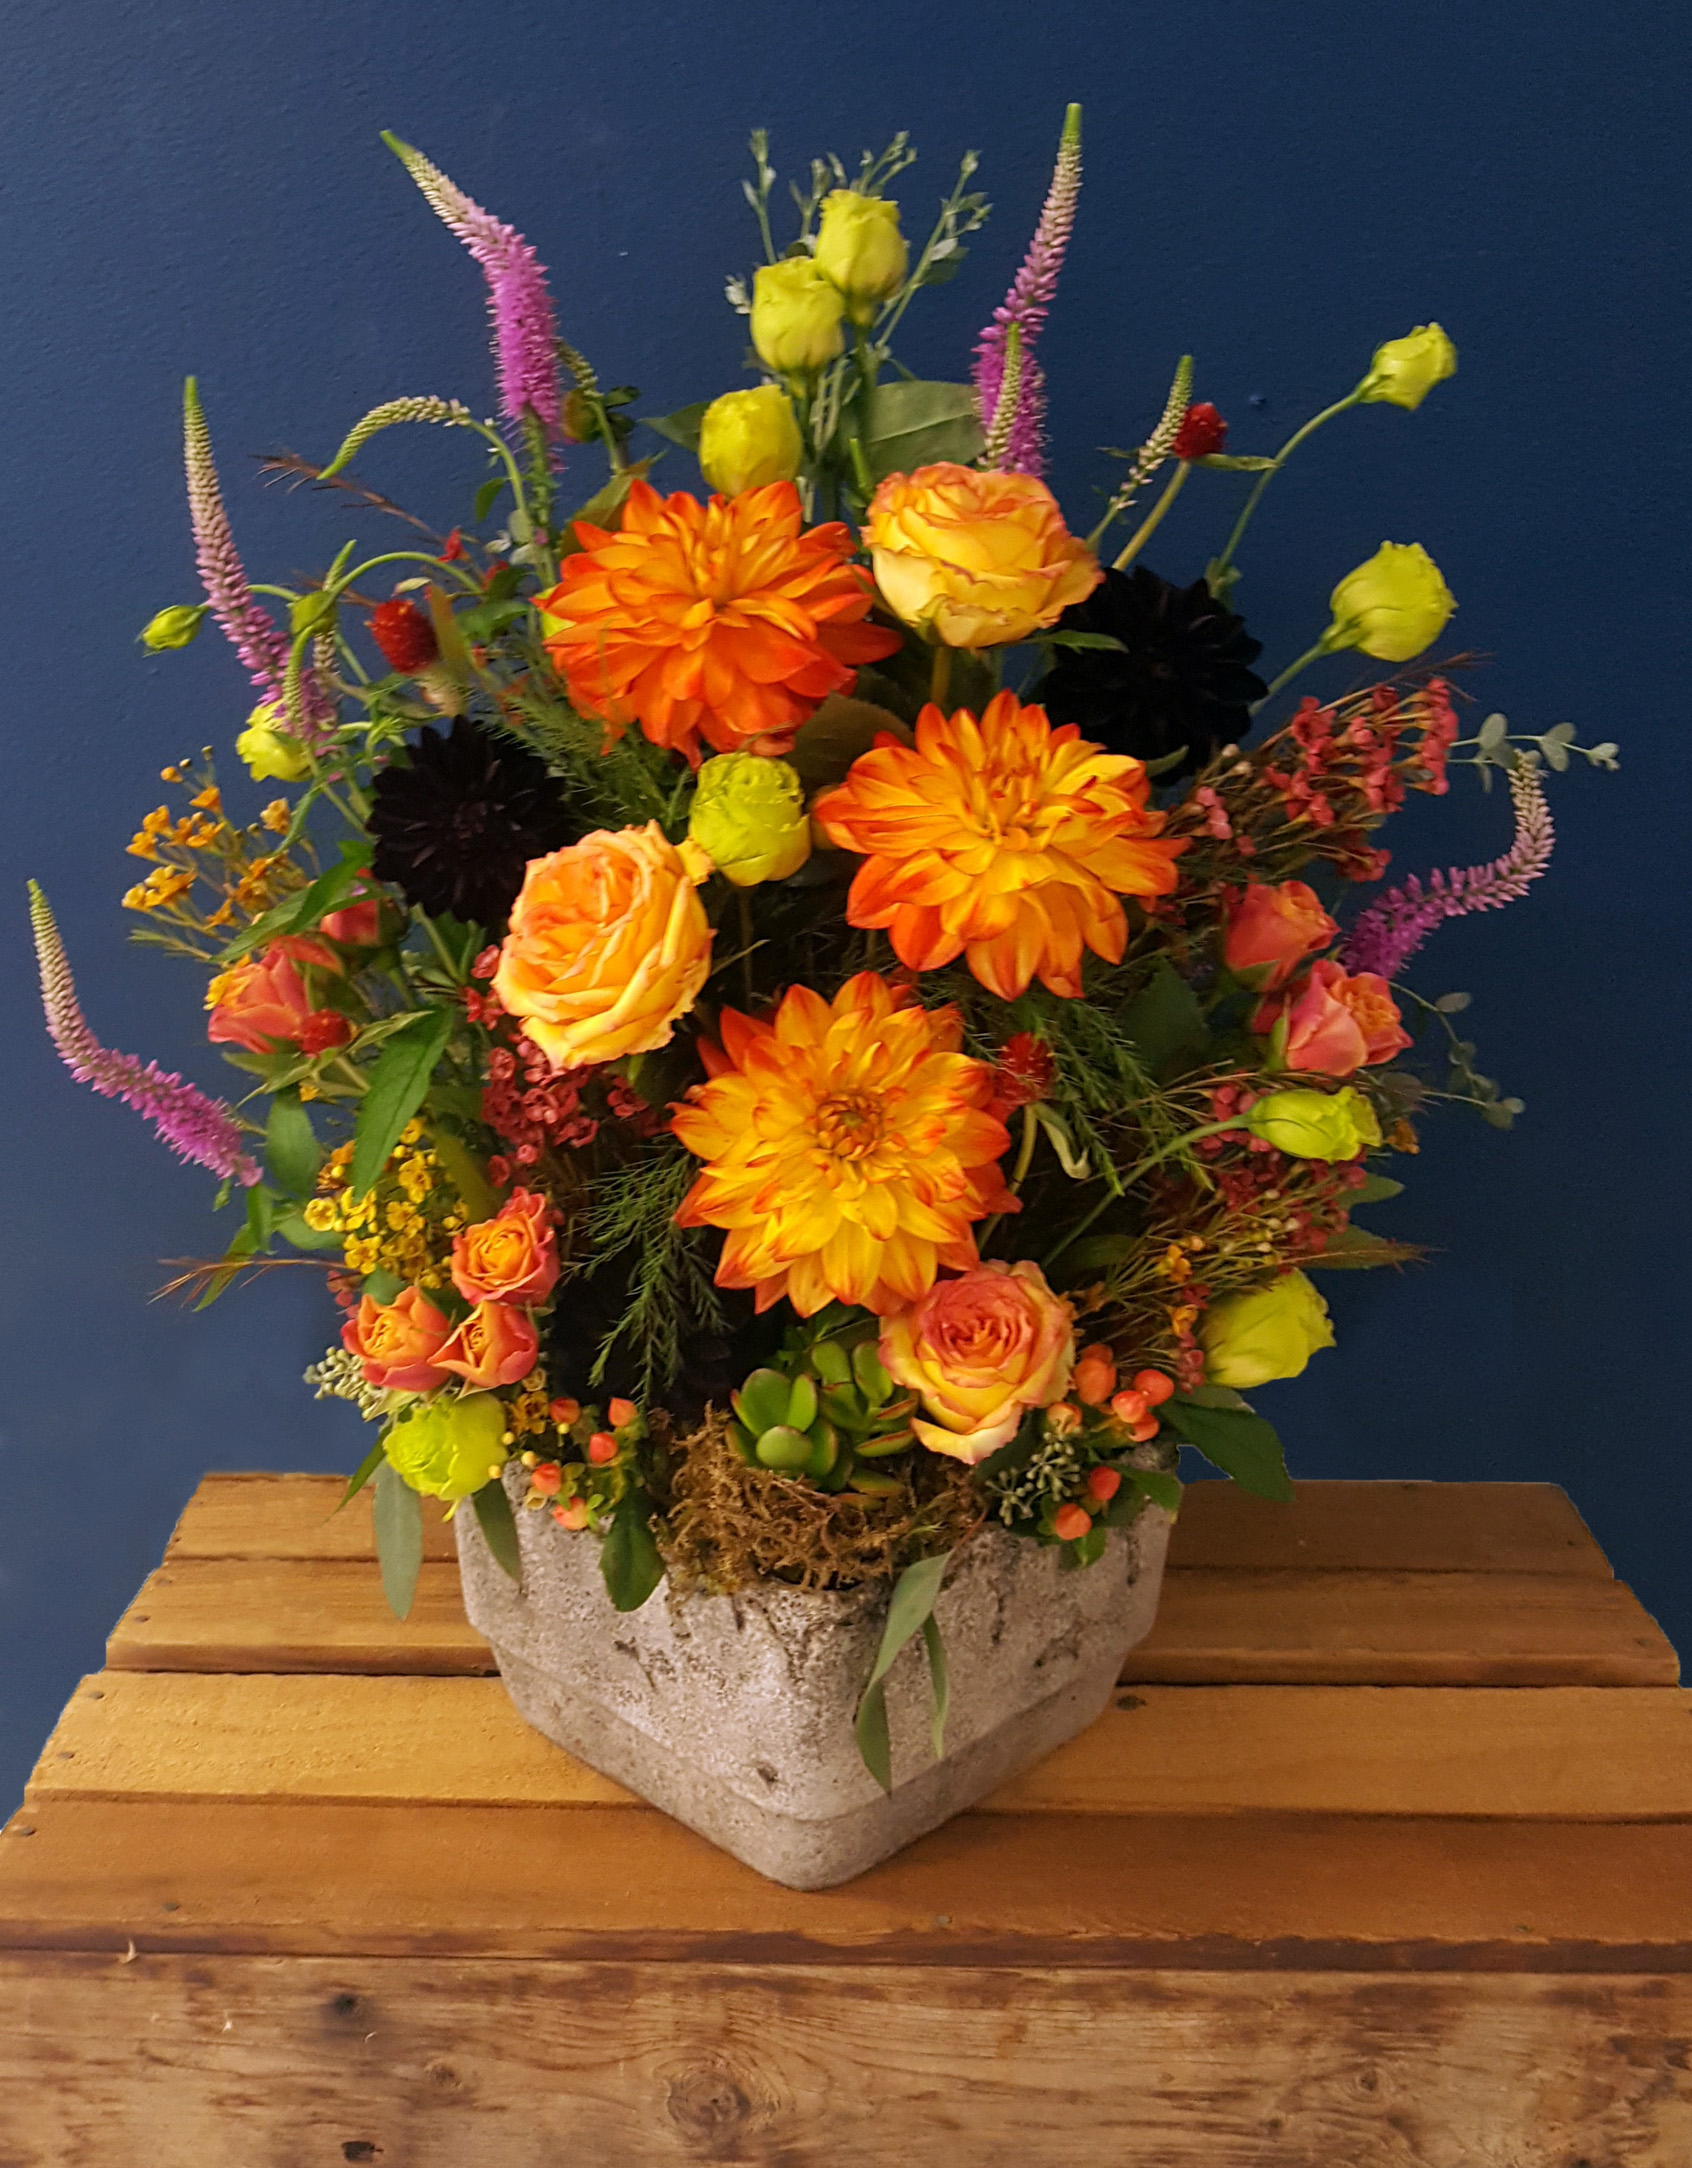 Williams flower gift fall design contest 2017 exquisite fall design contest 5 izmirmasajfo